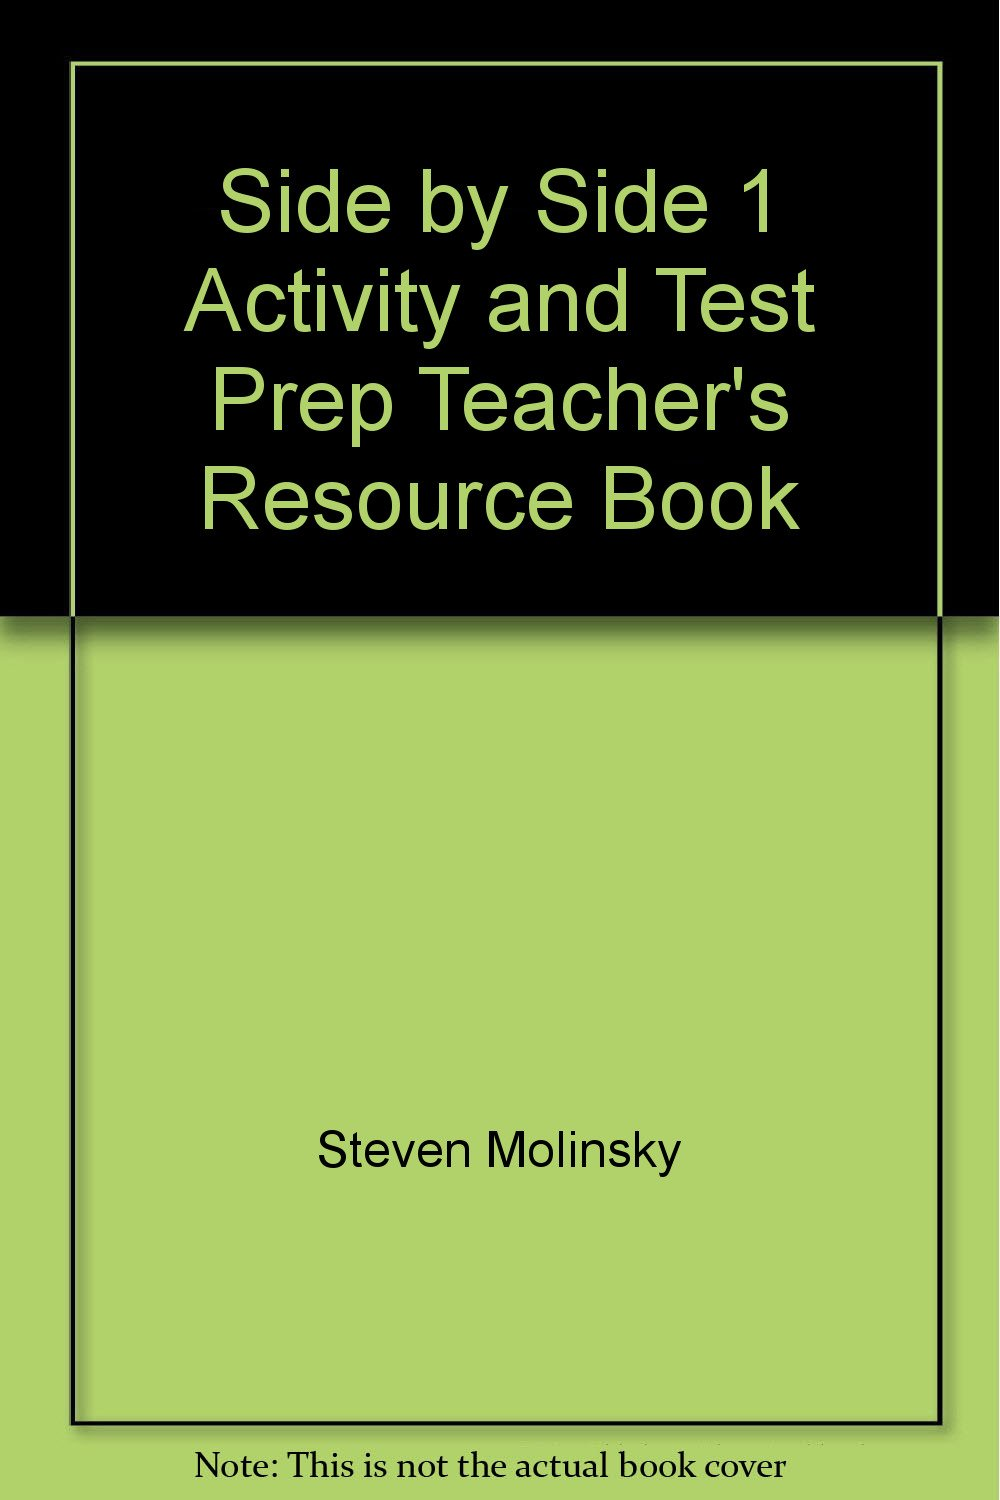 Download Side by Side 1 Activity and Test Prep Teacher's Resource Book ebook